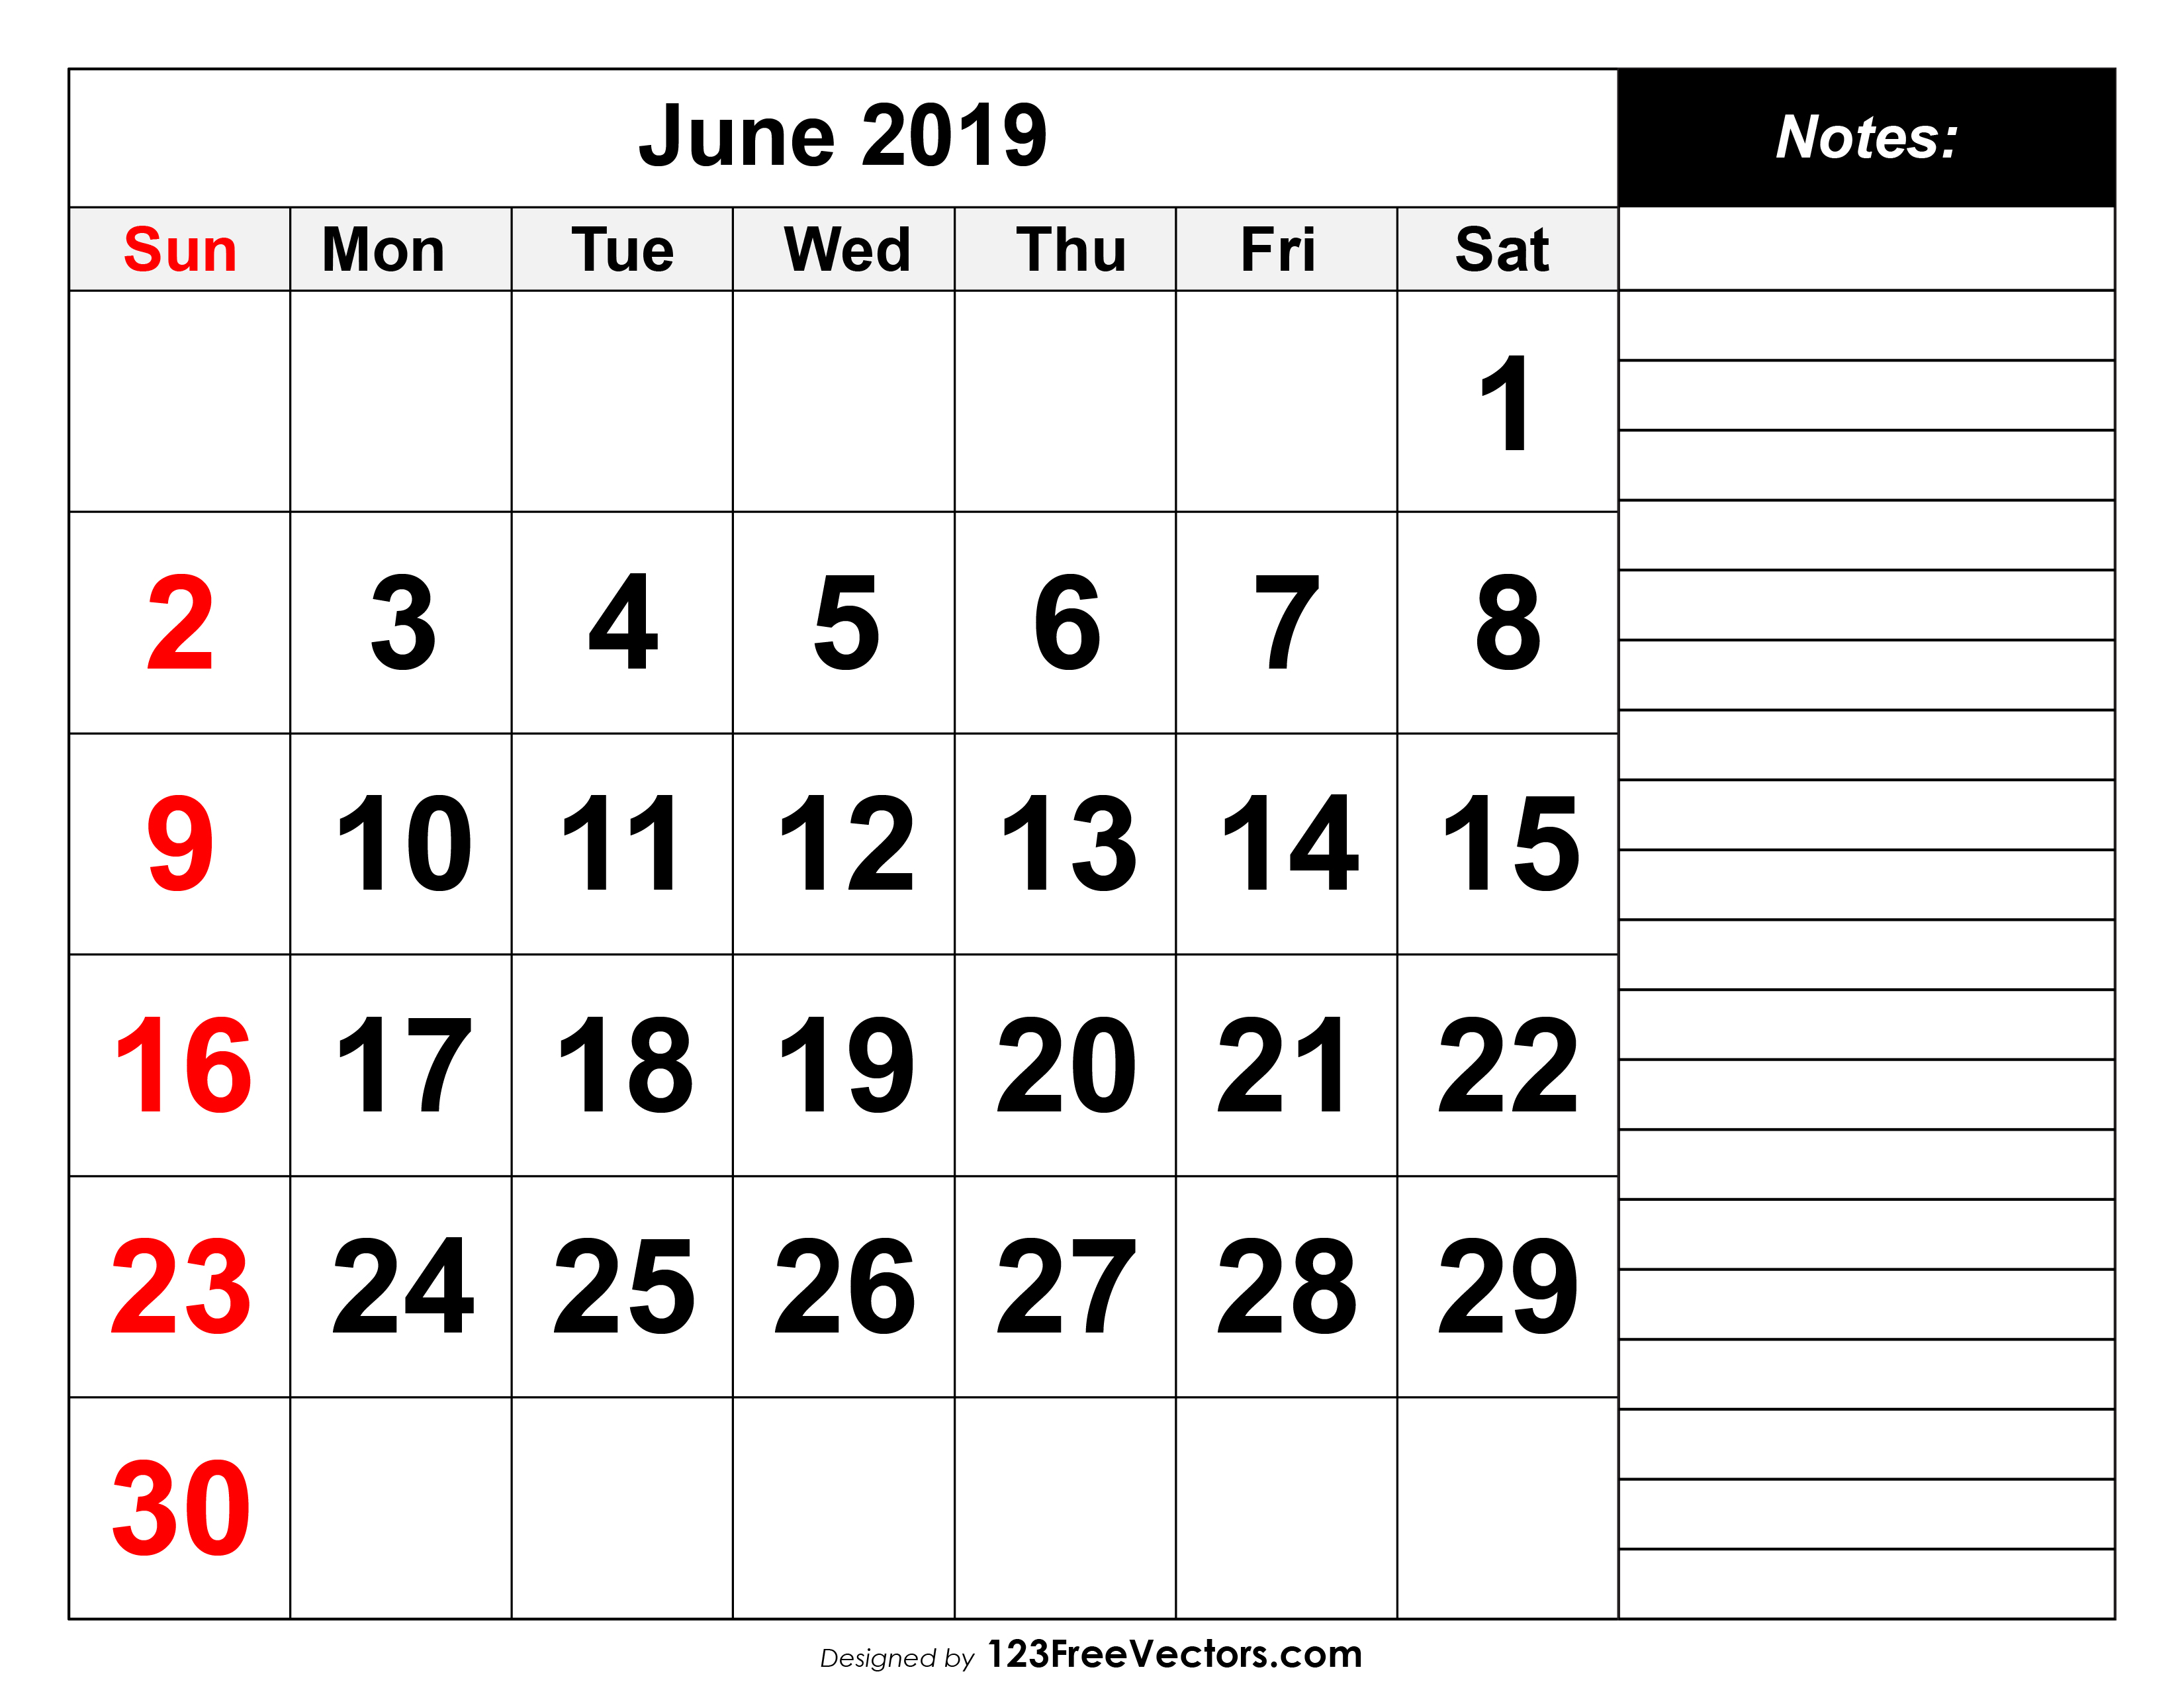 picture relating to June Printable Calendar named June 2019 Printable Calendar